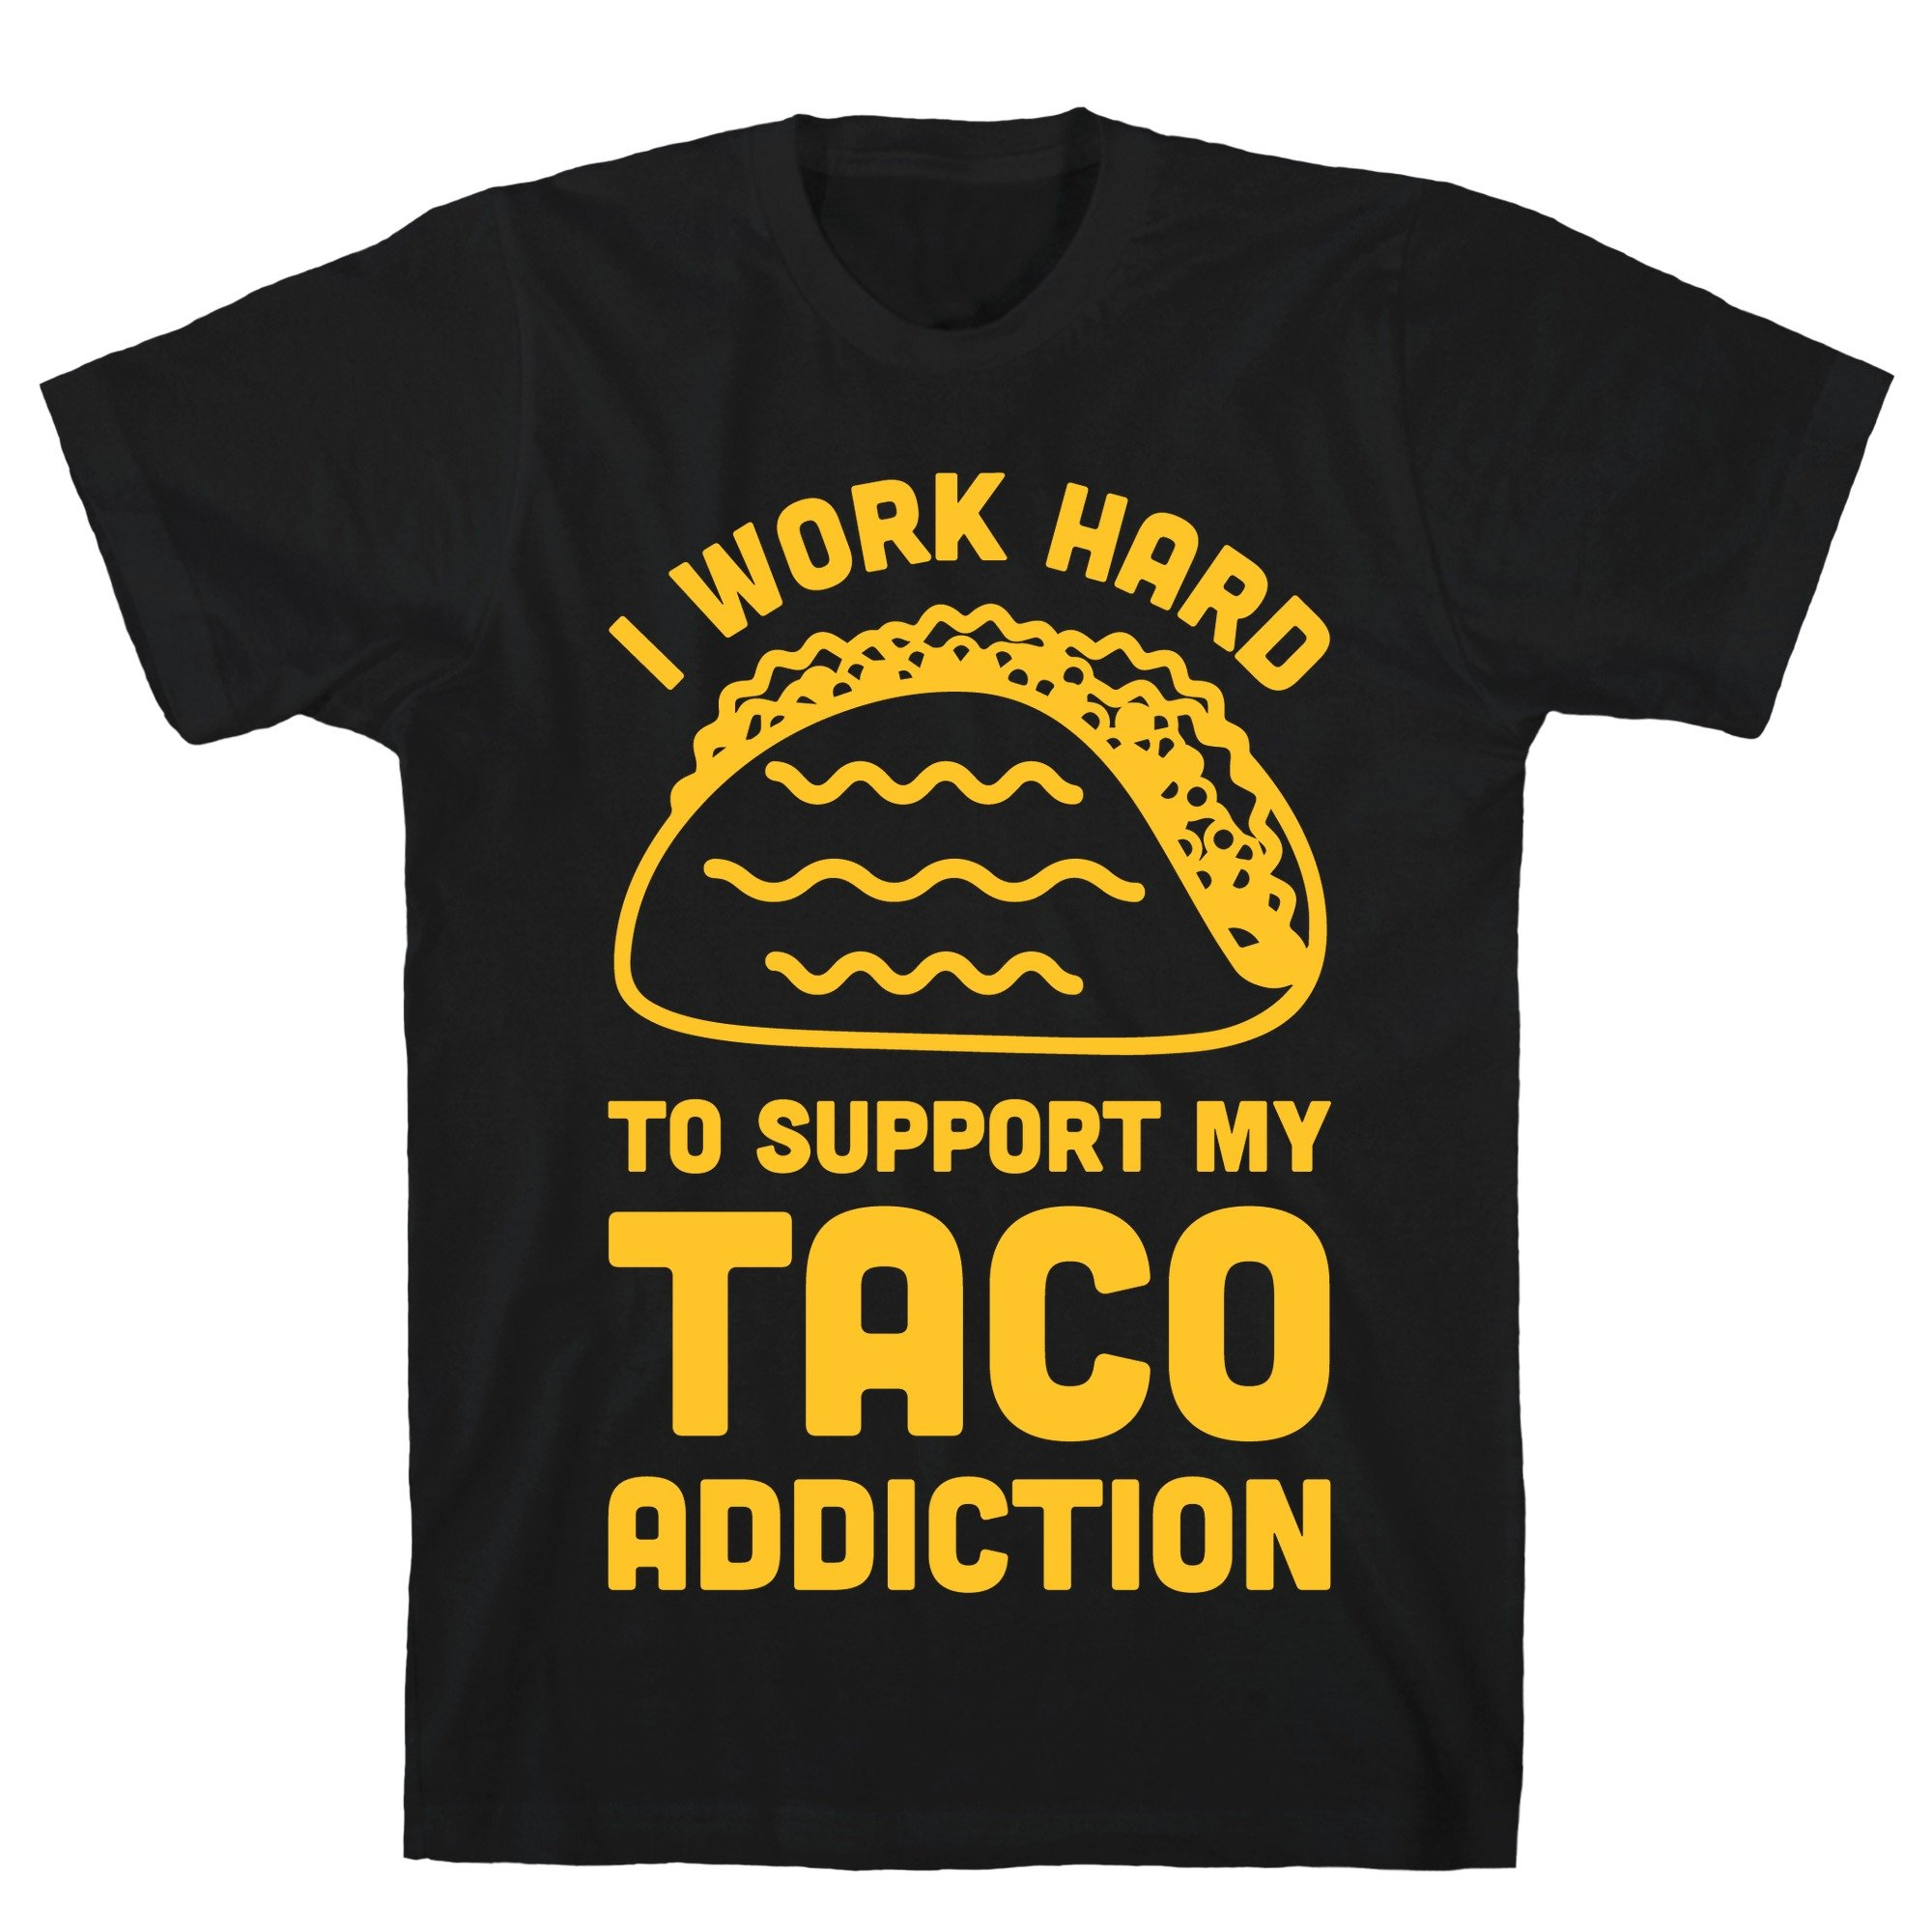 LookHUMAN I Work Hard to Support My Taco Addiction 2X Black Men's Cotton Tee by LookHUMAN